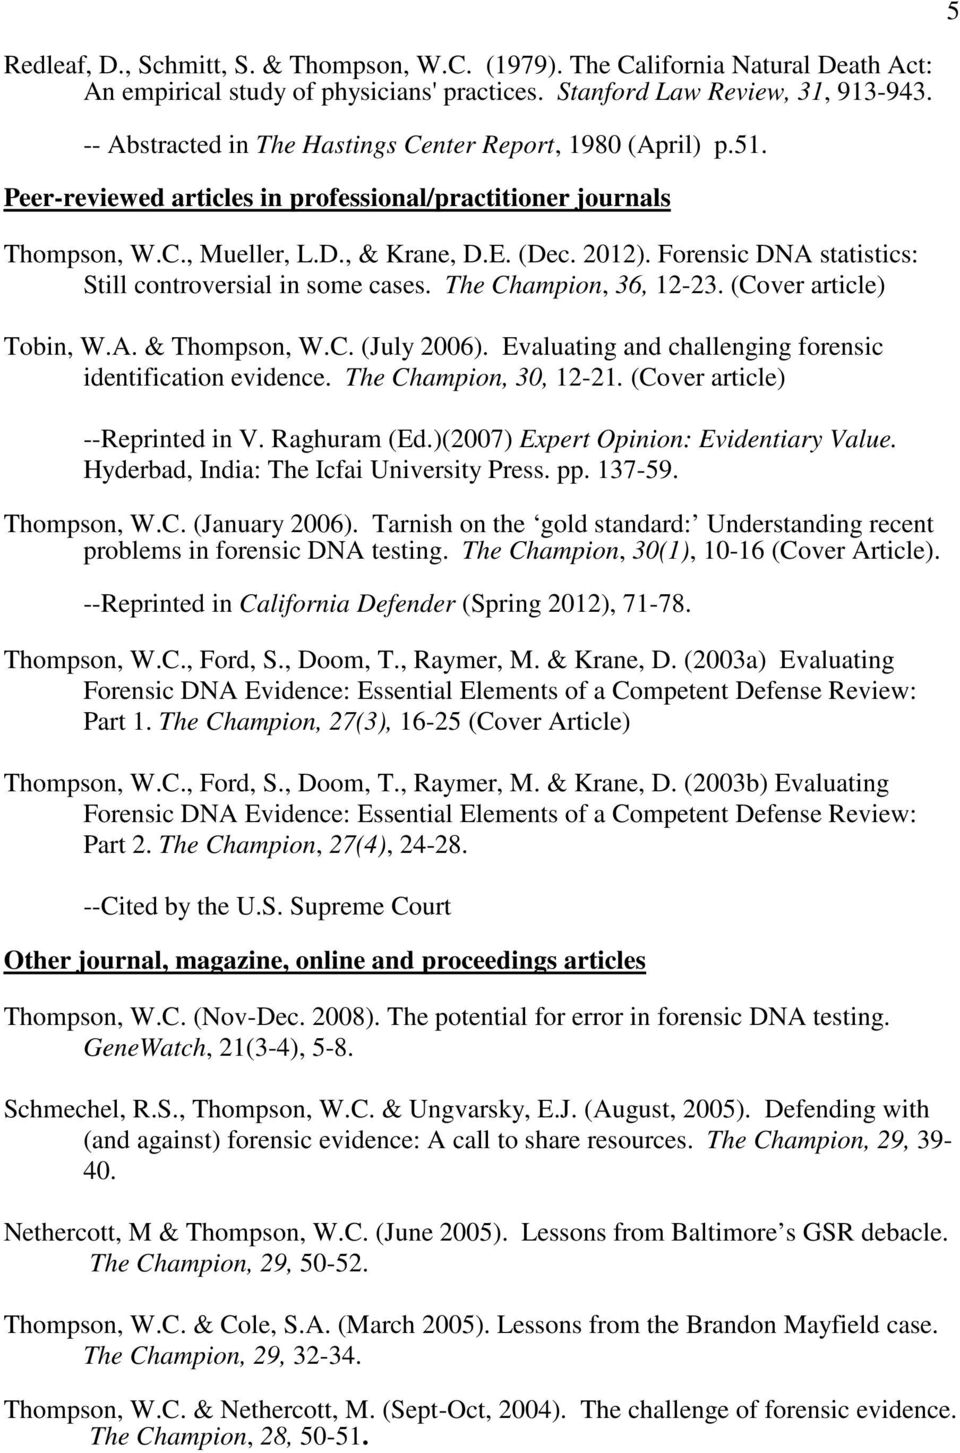 Forensic DNA statistics: Still controversial in some cases. The Champion, 36, 12-23. (Cover article) Tobin, W.A. & Thompson, W.C. (July 2006).